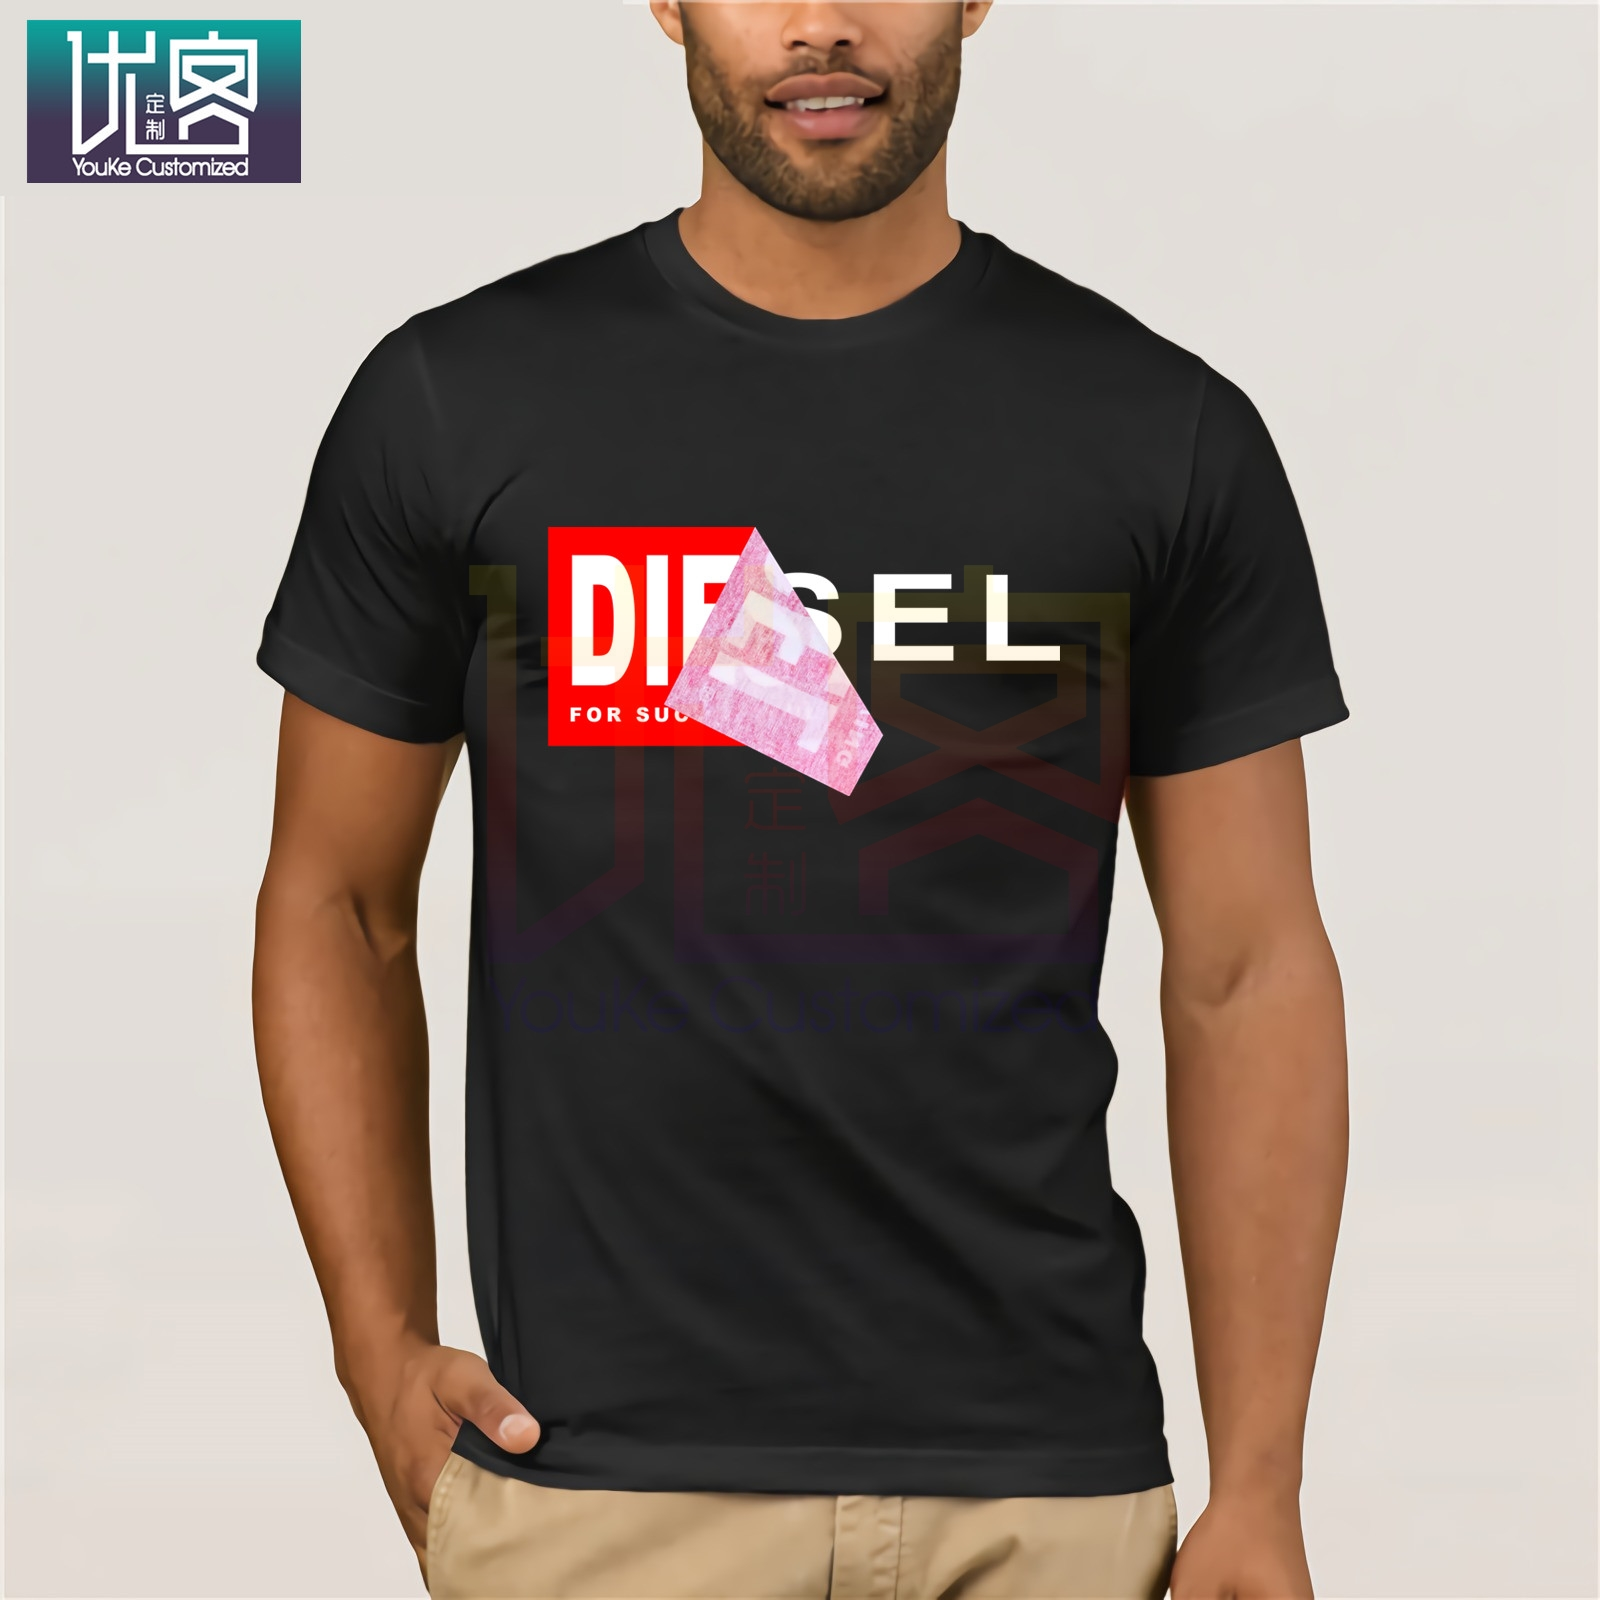 Diesel T-Diego QA T-Shirt Classic Style T-shirt Winner Tee Men Brand Clothing Clothes Popular T-Shirt Crewneck 100% Cotton Tees